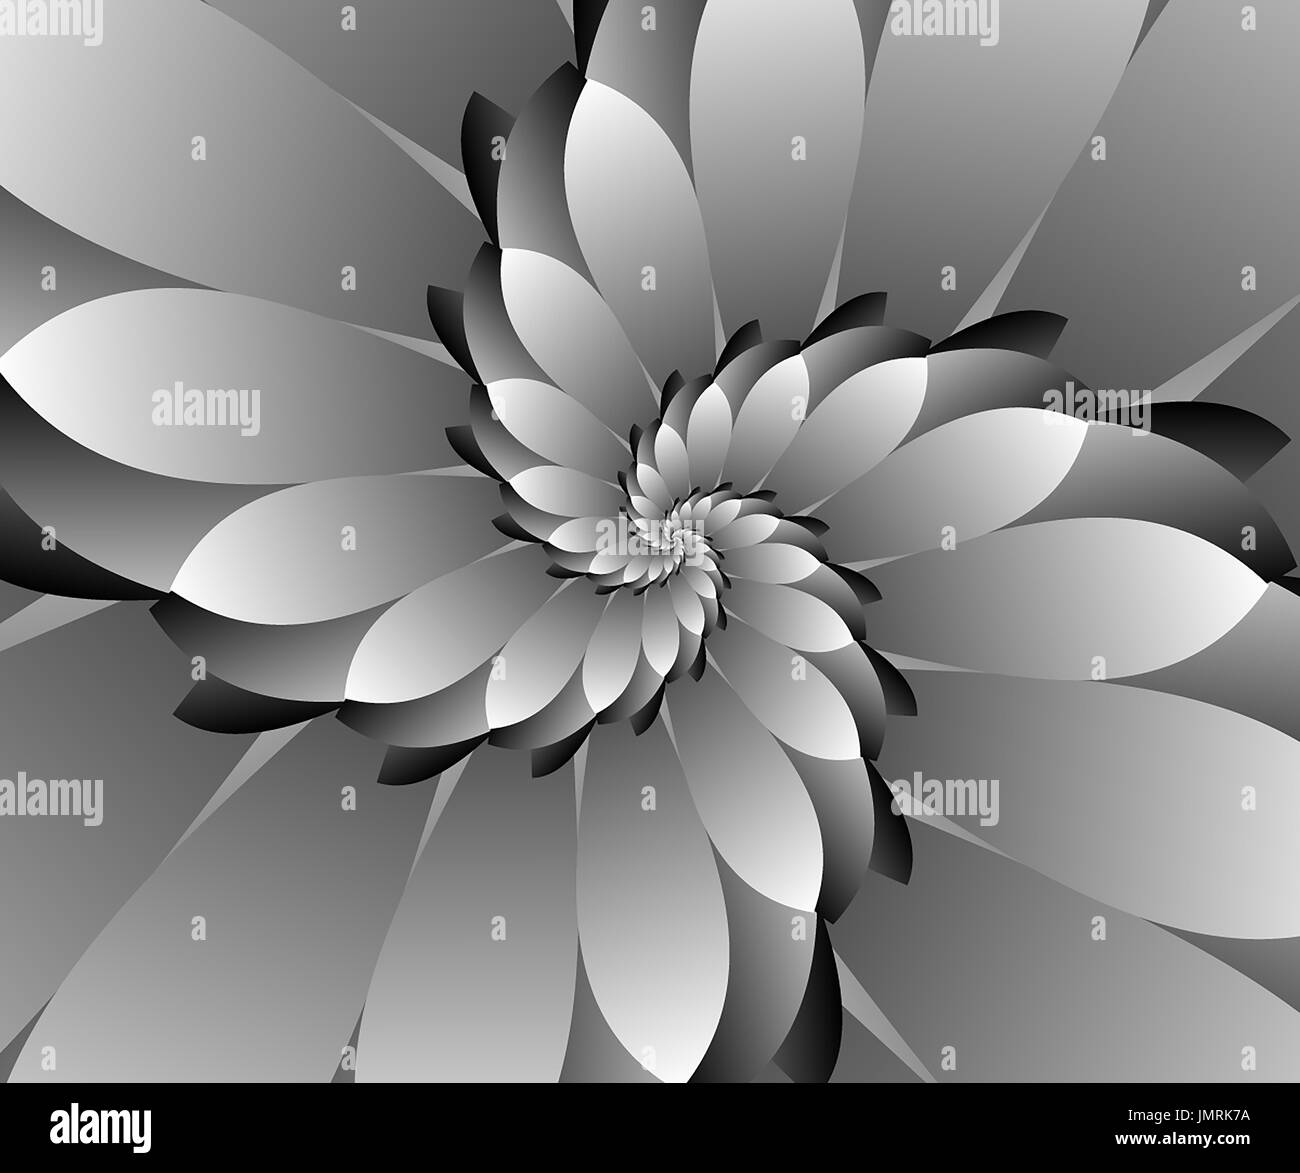 Abstract Floral Design Background Wallpaper Stock Photo Alamy